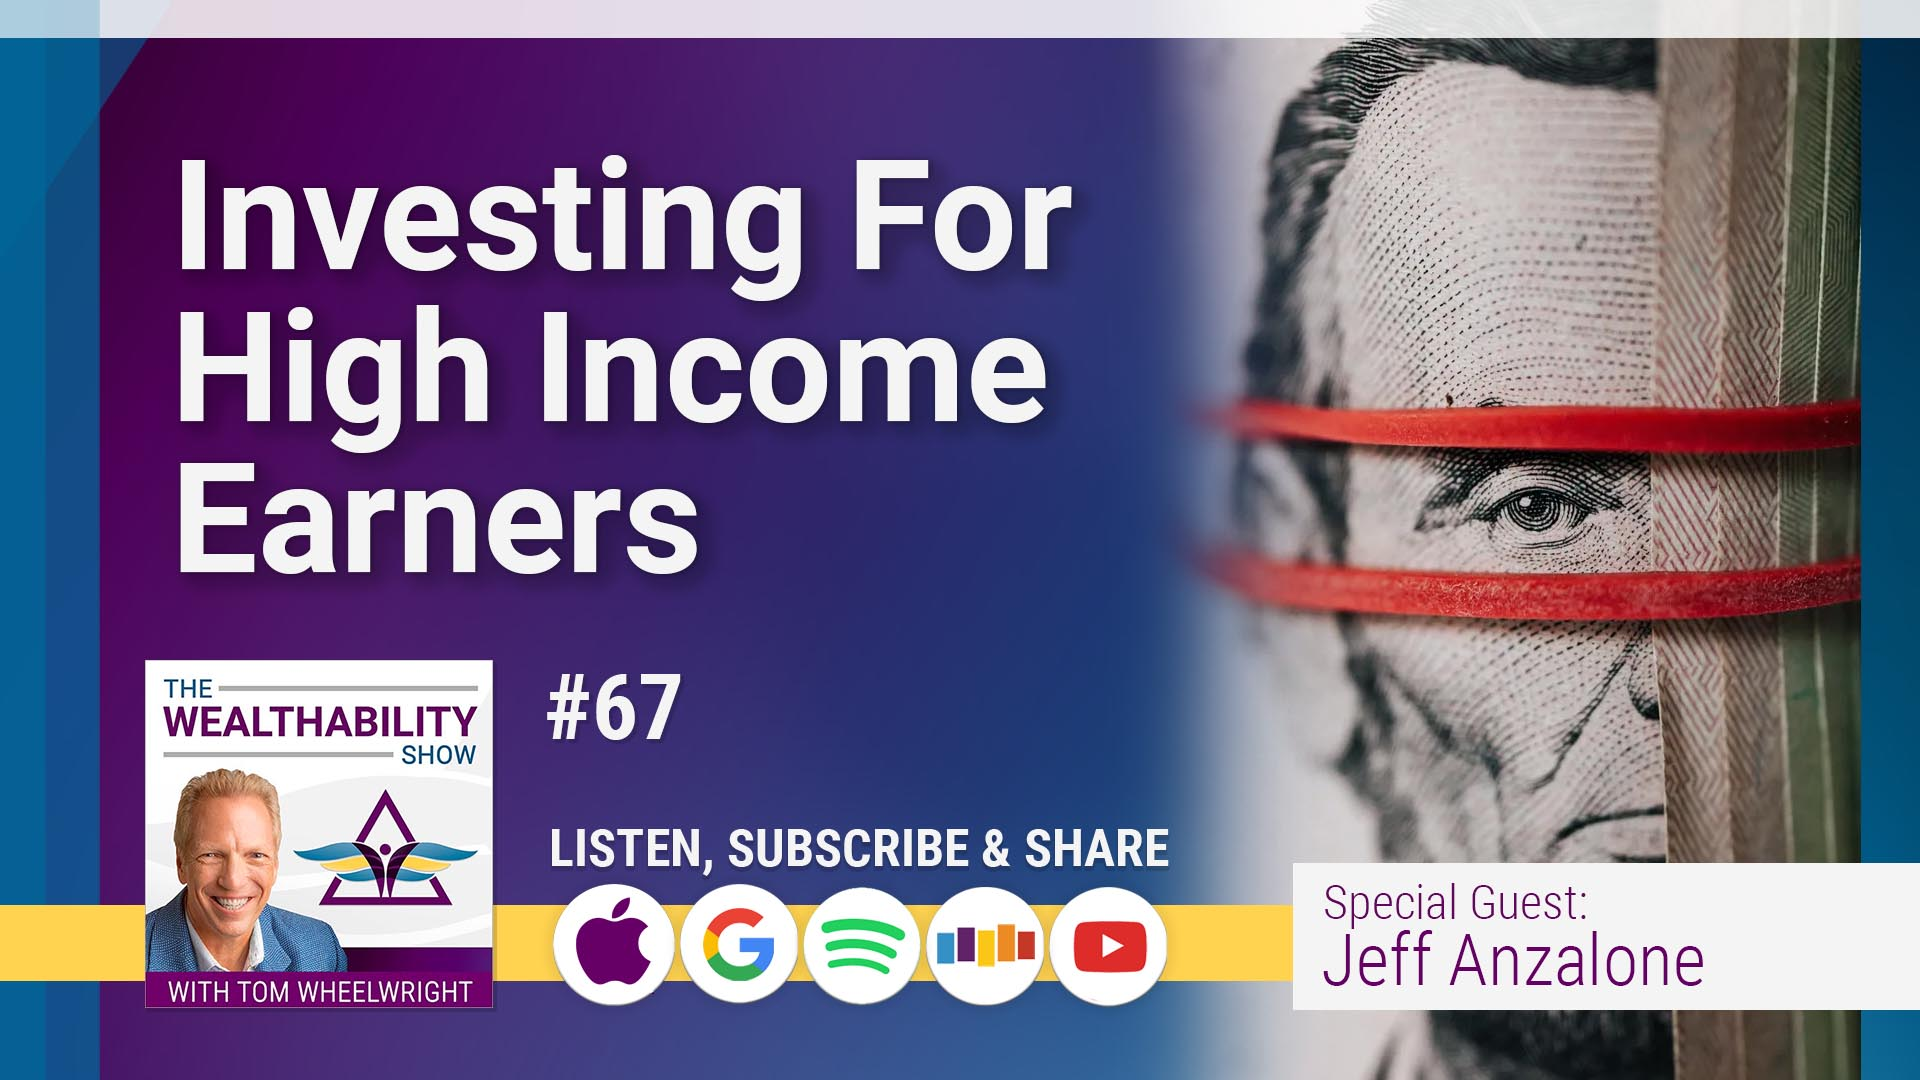 Investing for High Income Earners